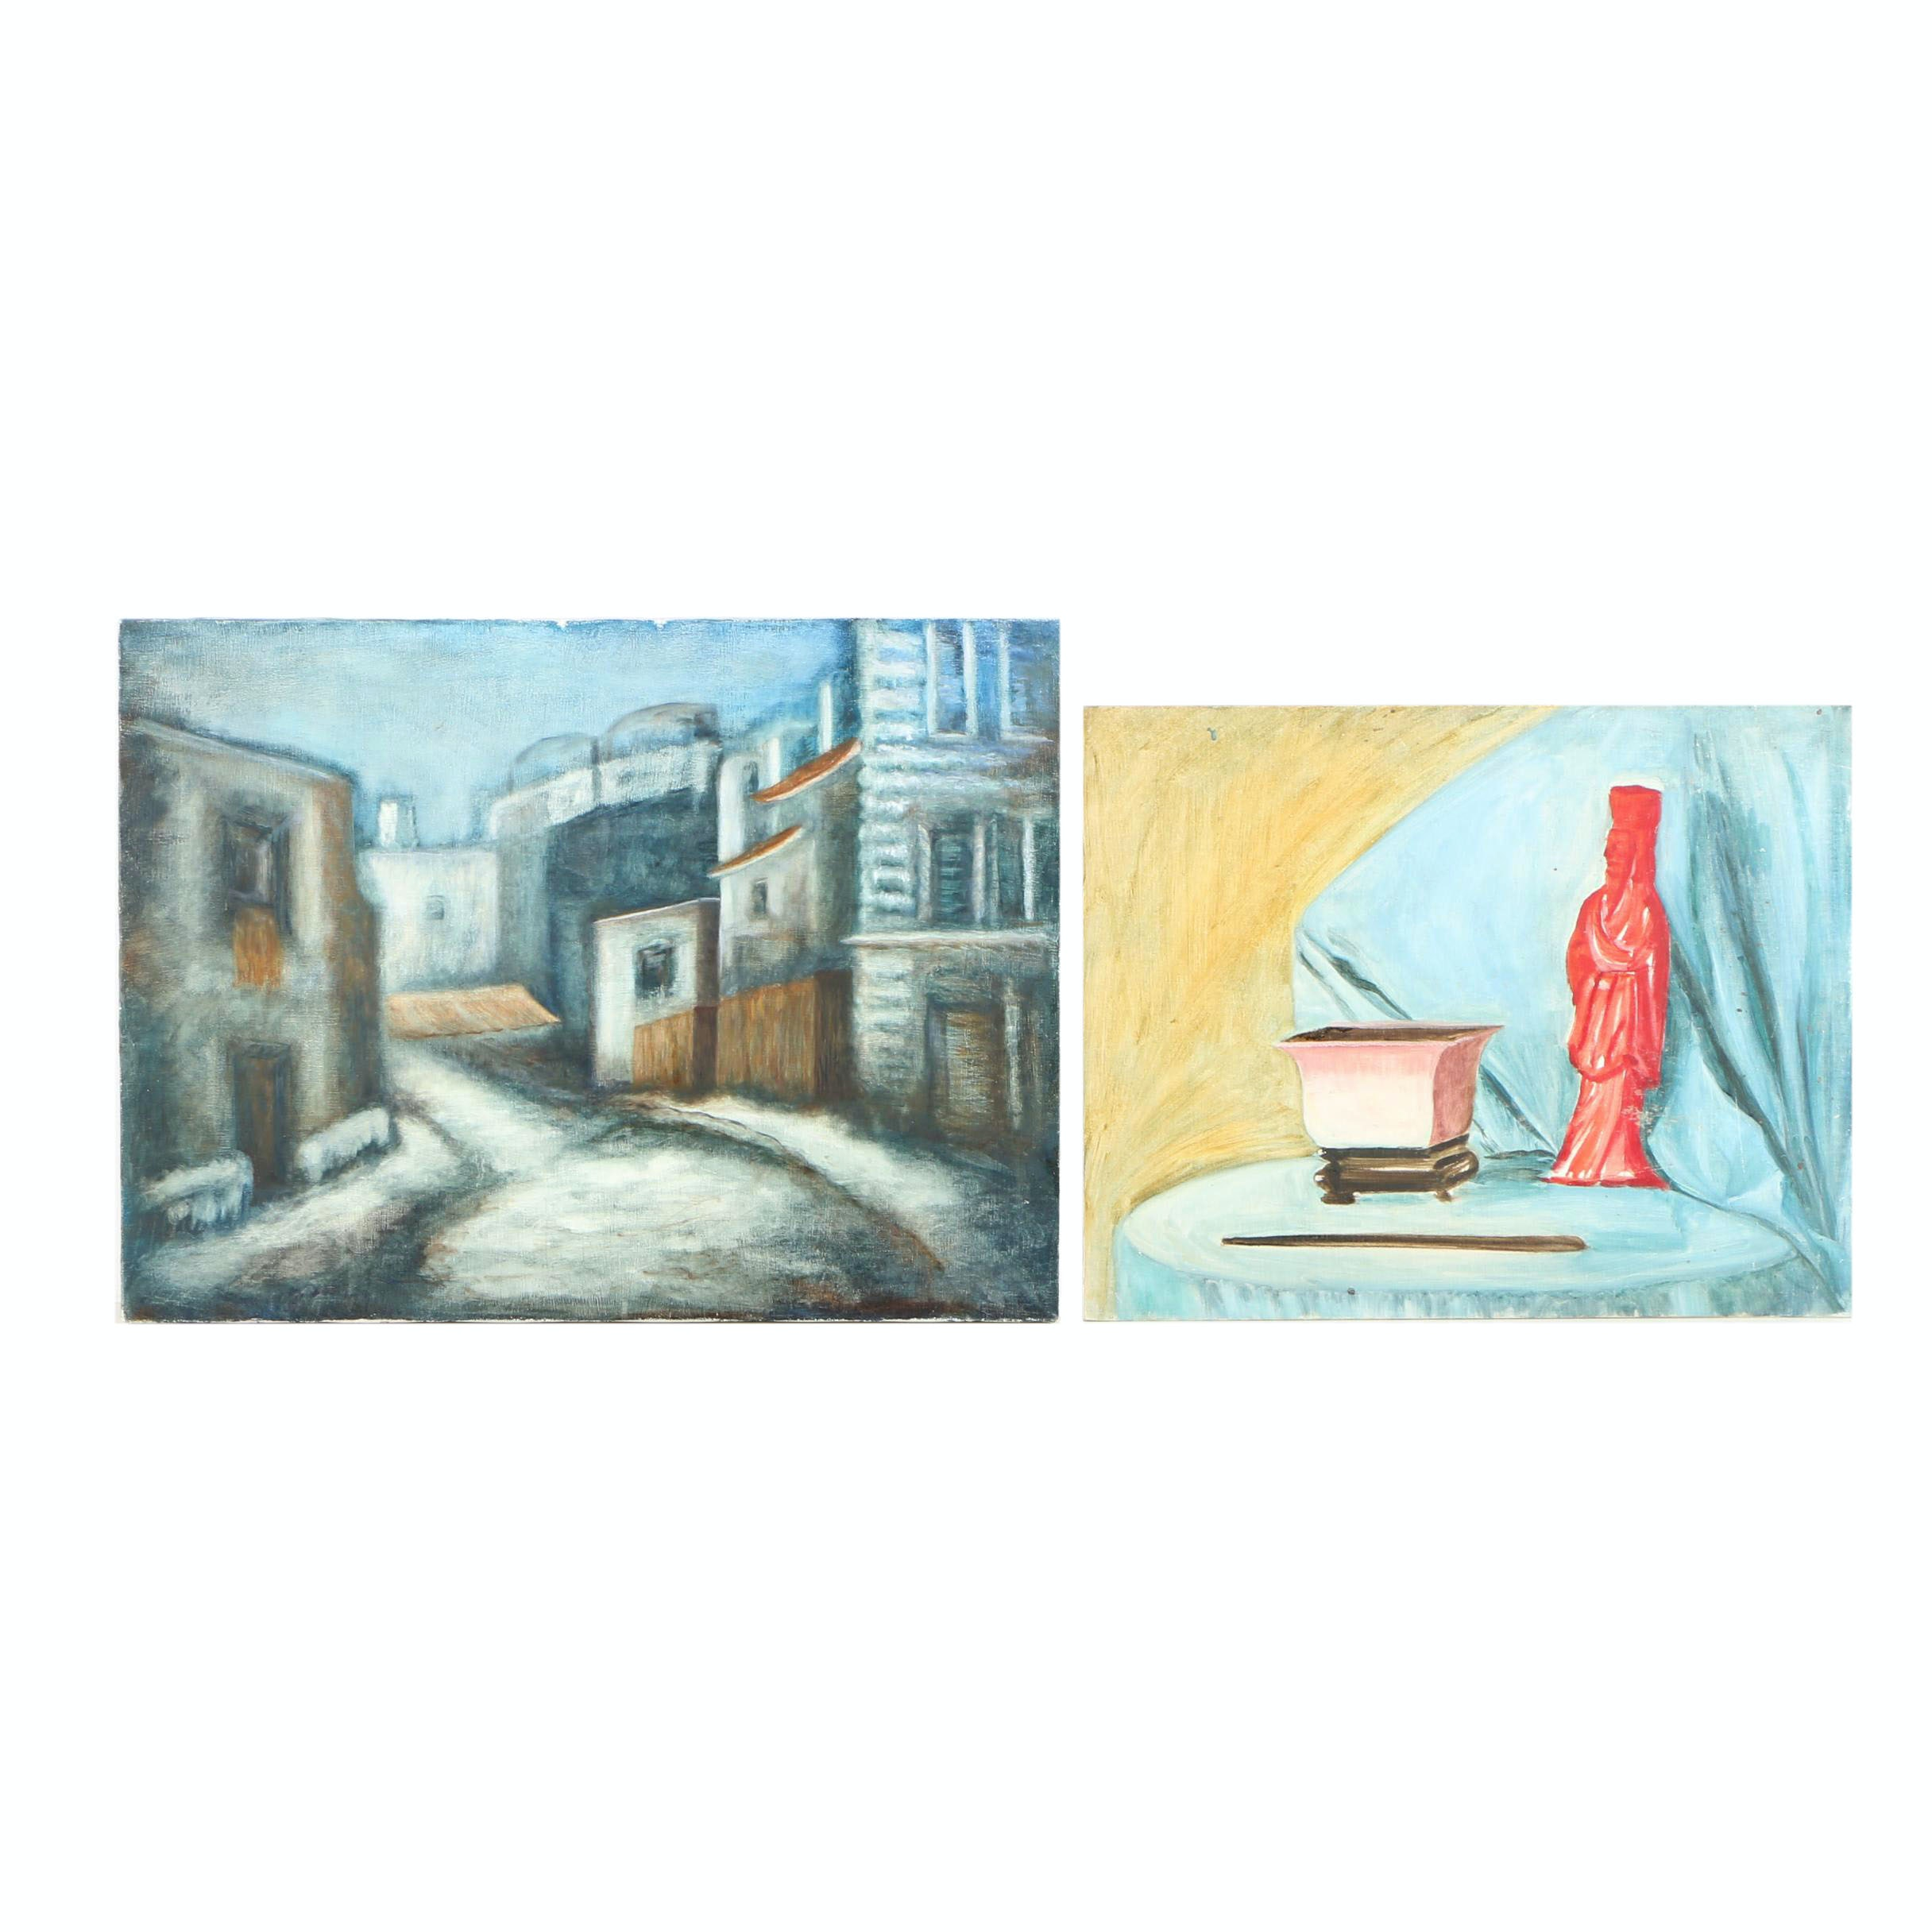 Acrylic Paintings of Town and Still Life Scenes